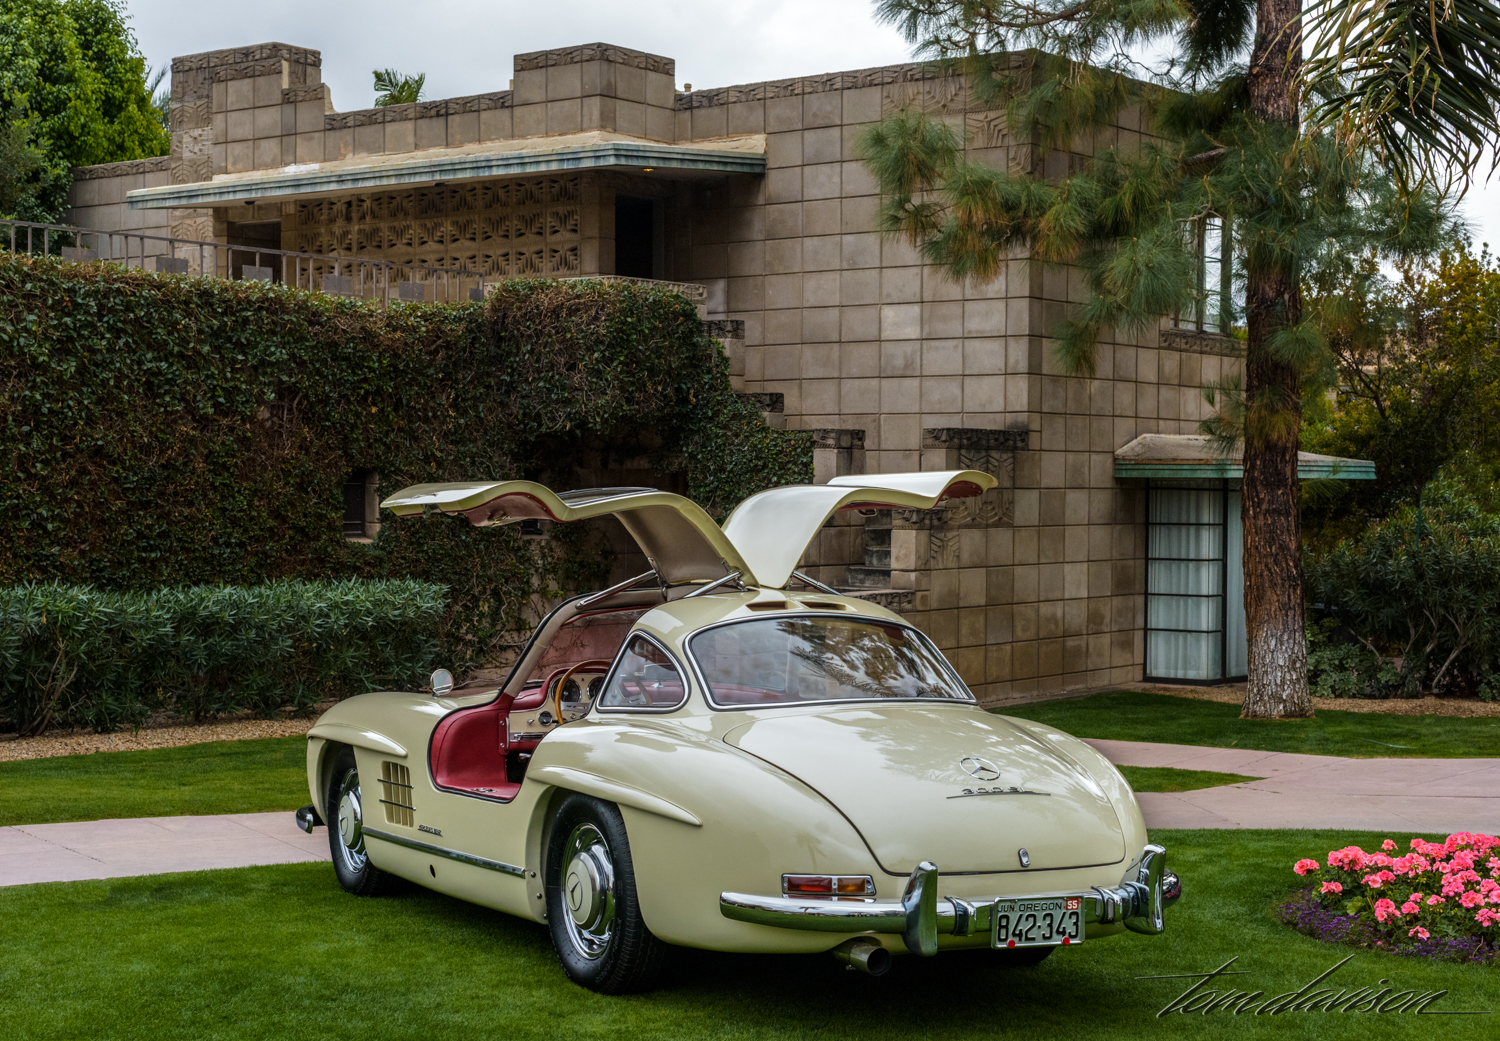 1955 Mercedes Benz 300 SL Gullwing coupe